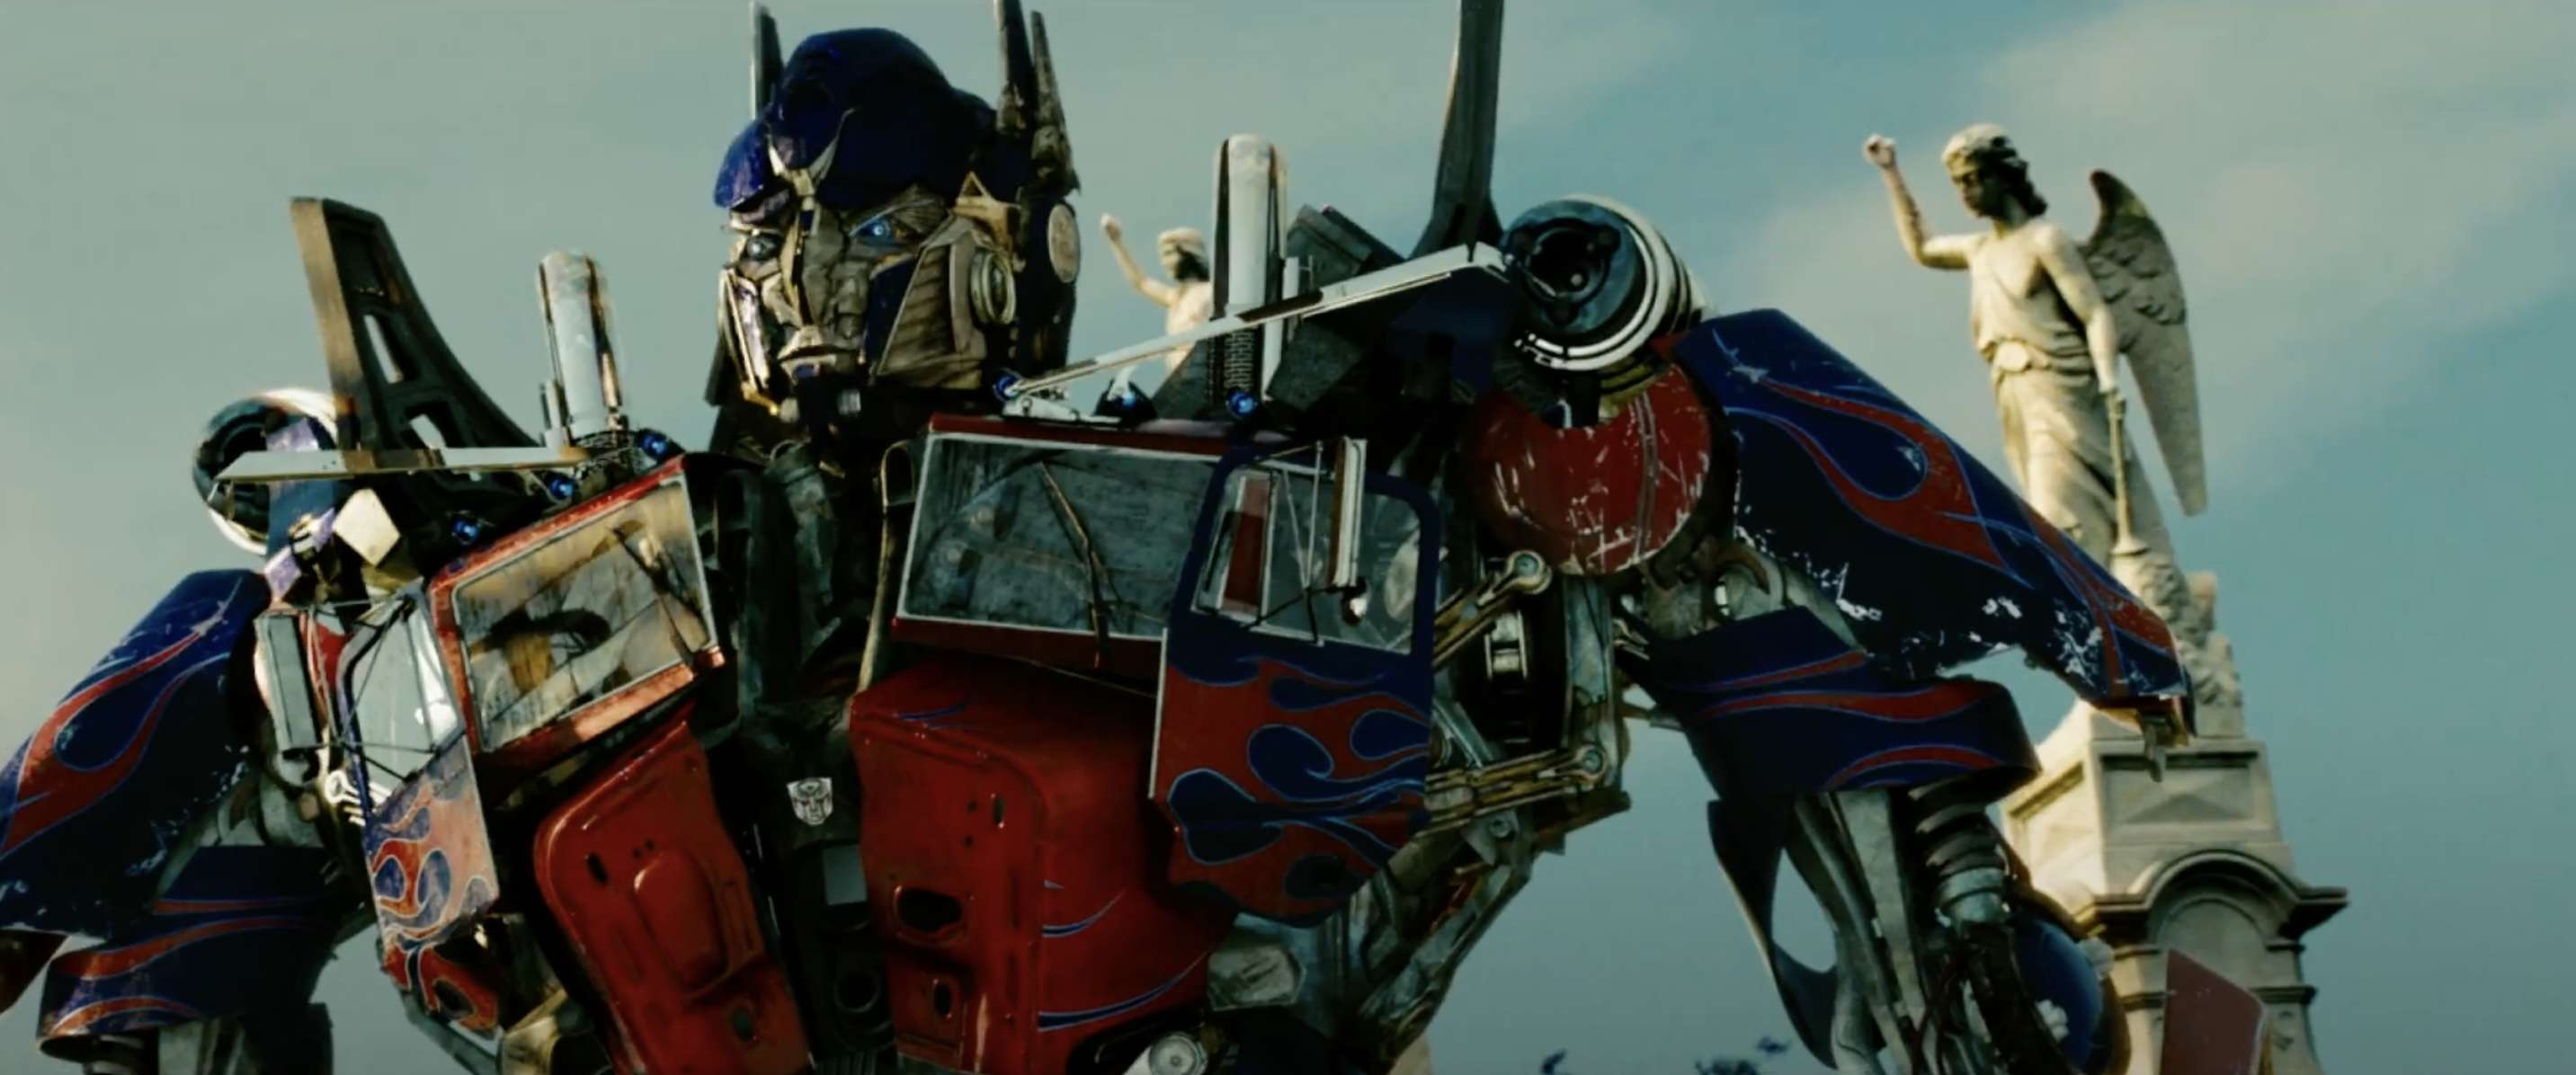 The next Transformers movie is based on Beast Wars, set in the 1990s, and promises a globe-trotting adventure